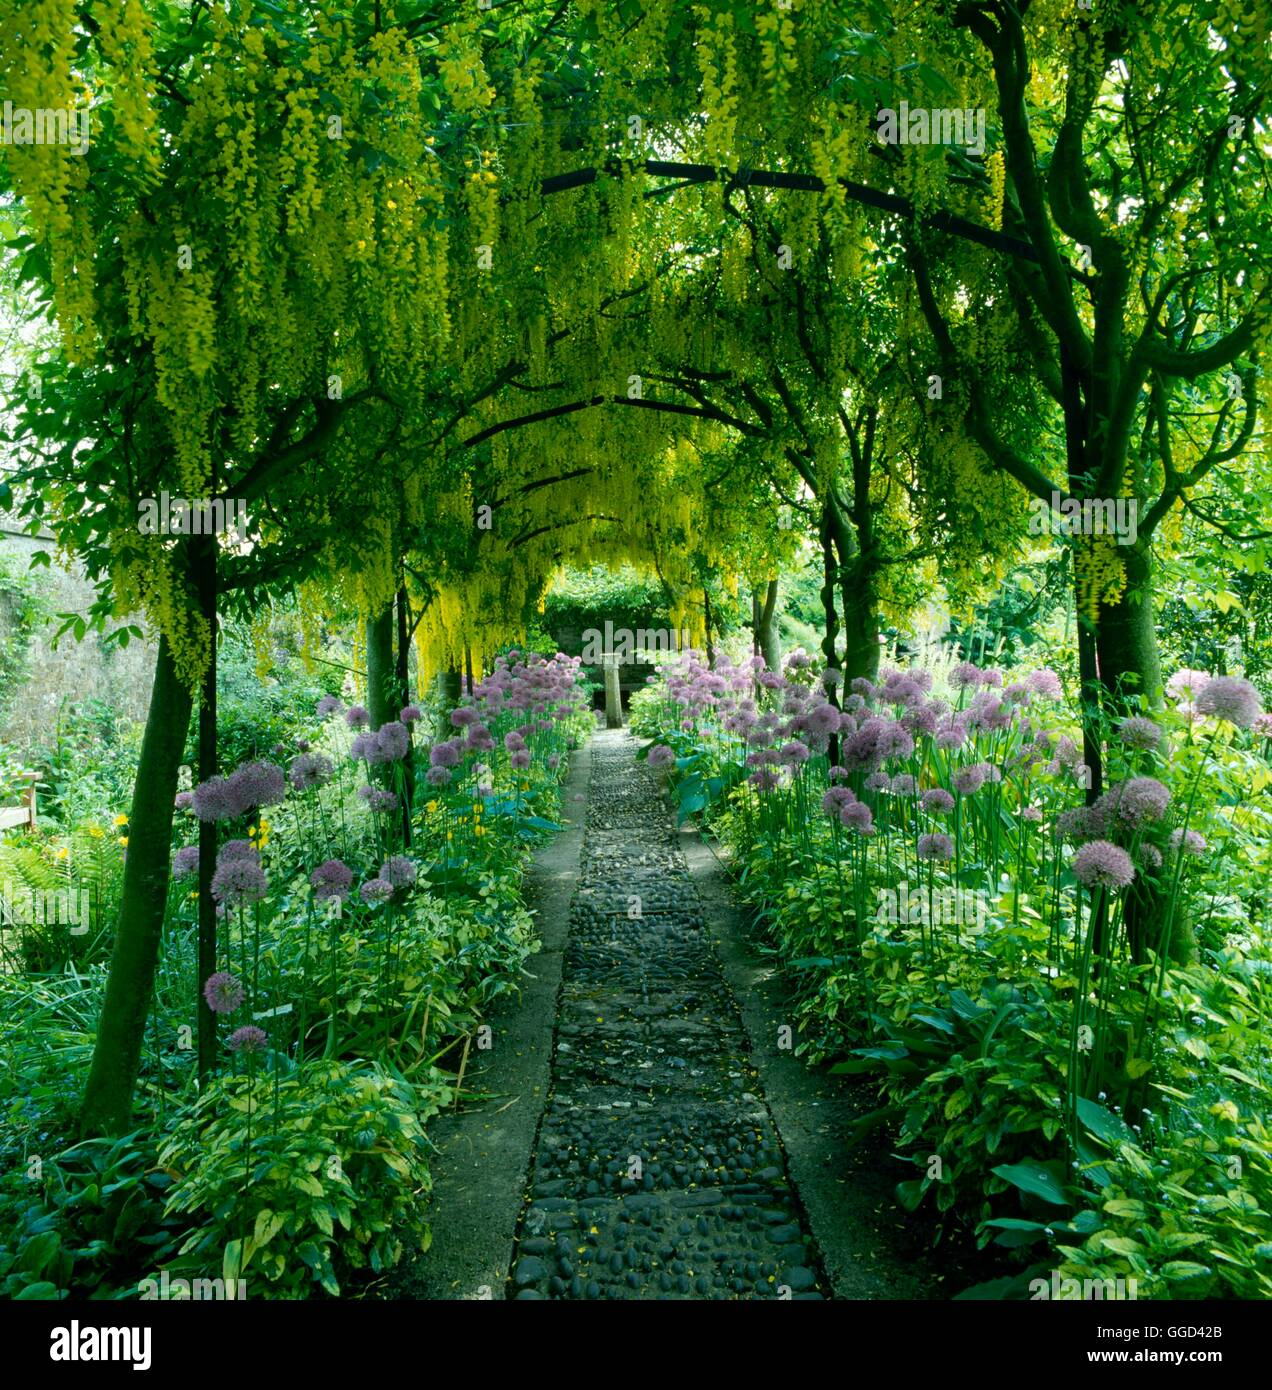 Archway - of Laburnum x watereri `Vossii' at Barnsley House. - - (Please credit: Photos Hort/designer Rosemary - Stock Image